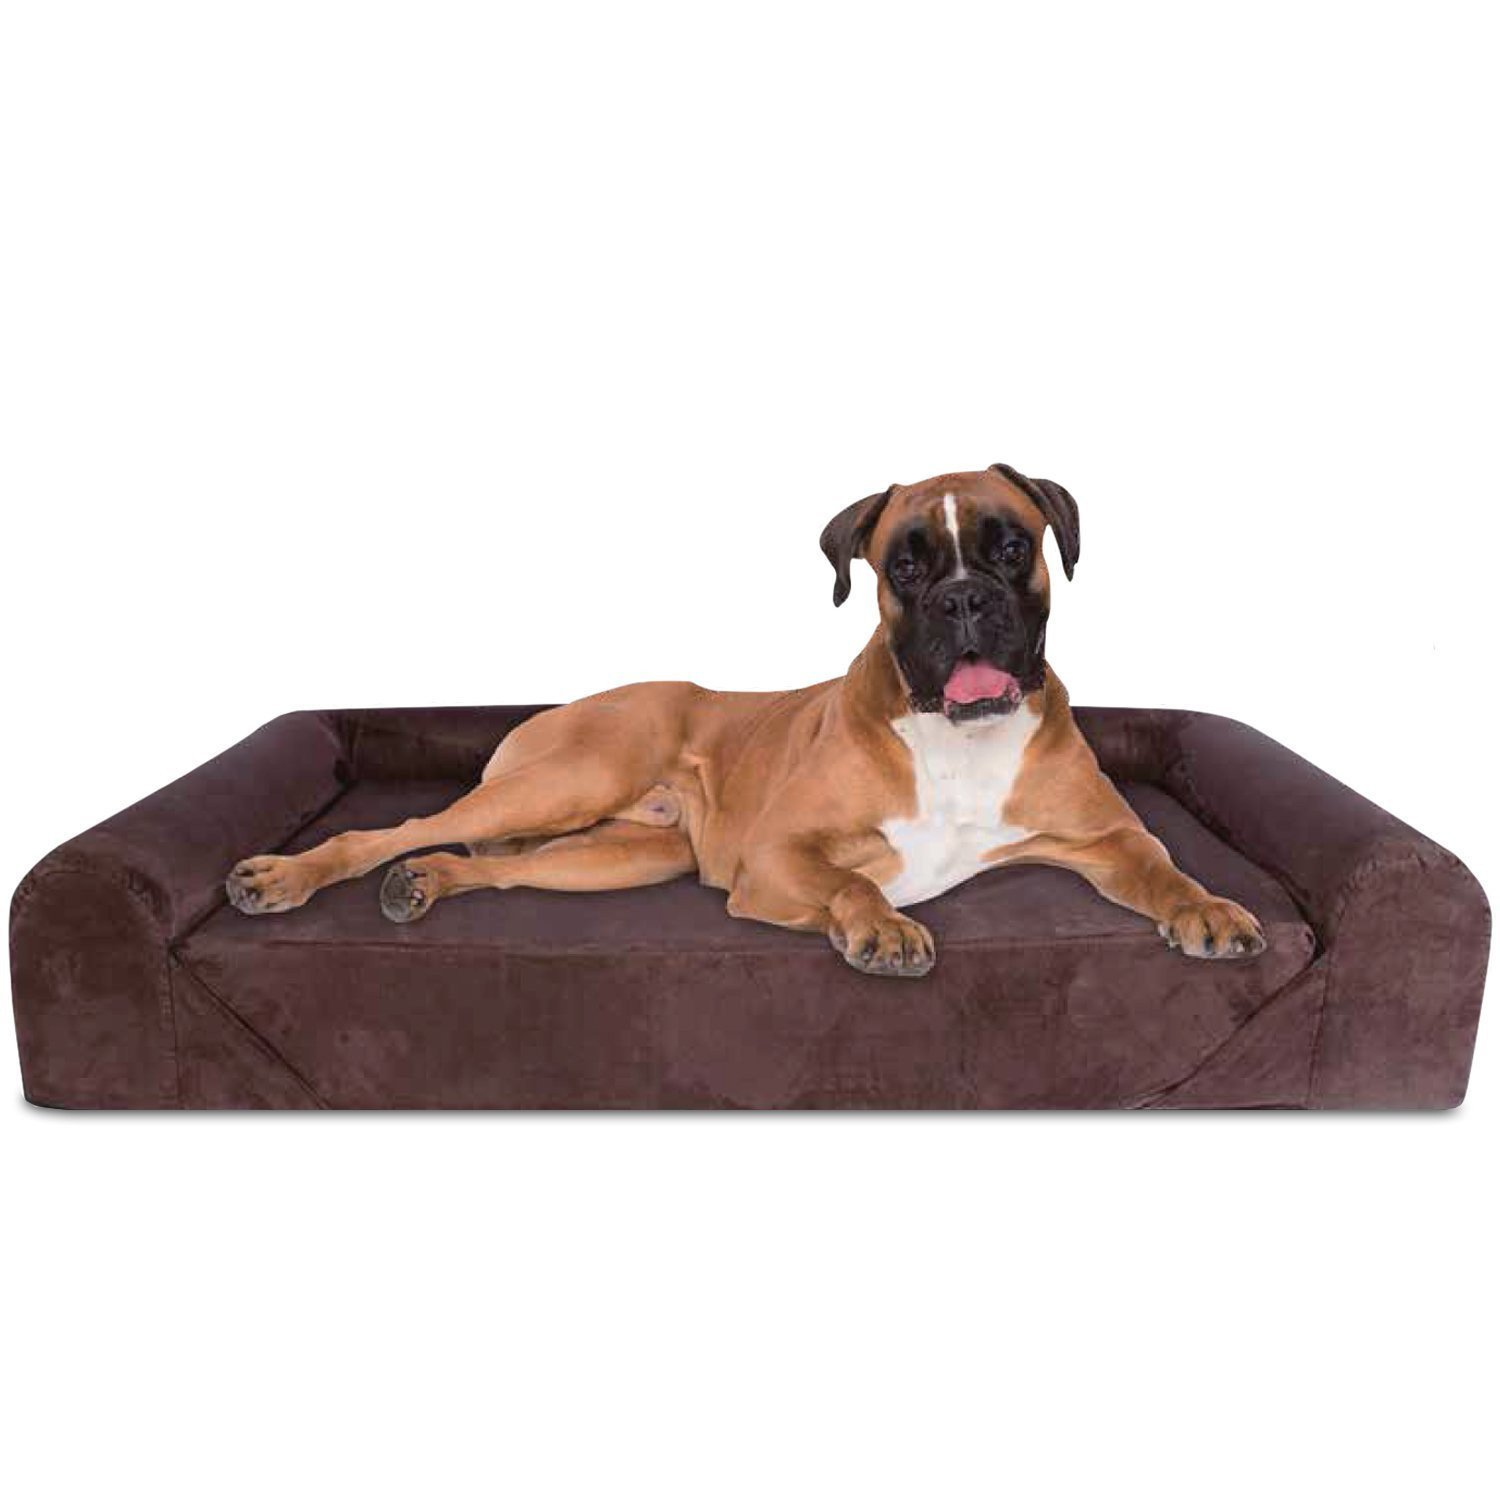 KOPEKS Deluxe Orthopedic Memory Foam Sofa Lounge Dog Bed, X-Large, Brown by KOPEKS